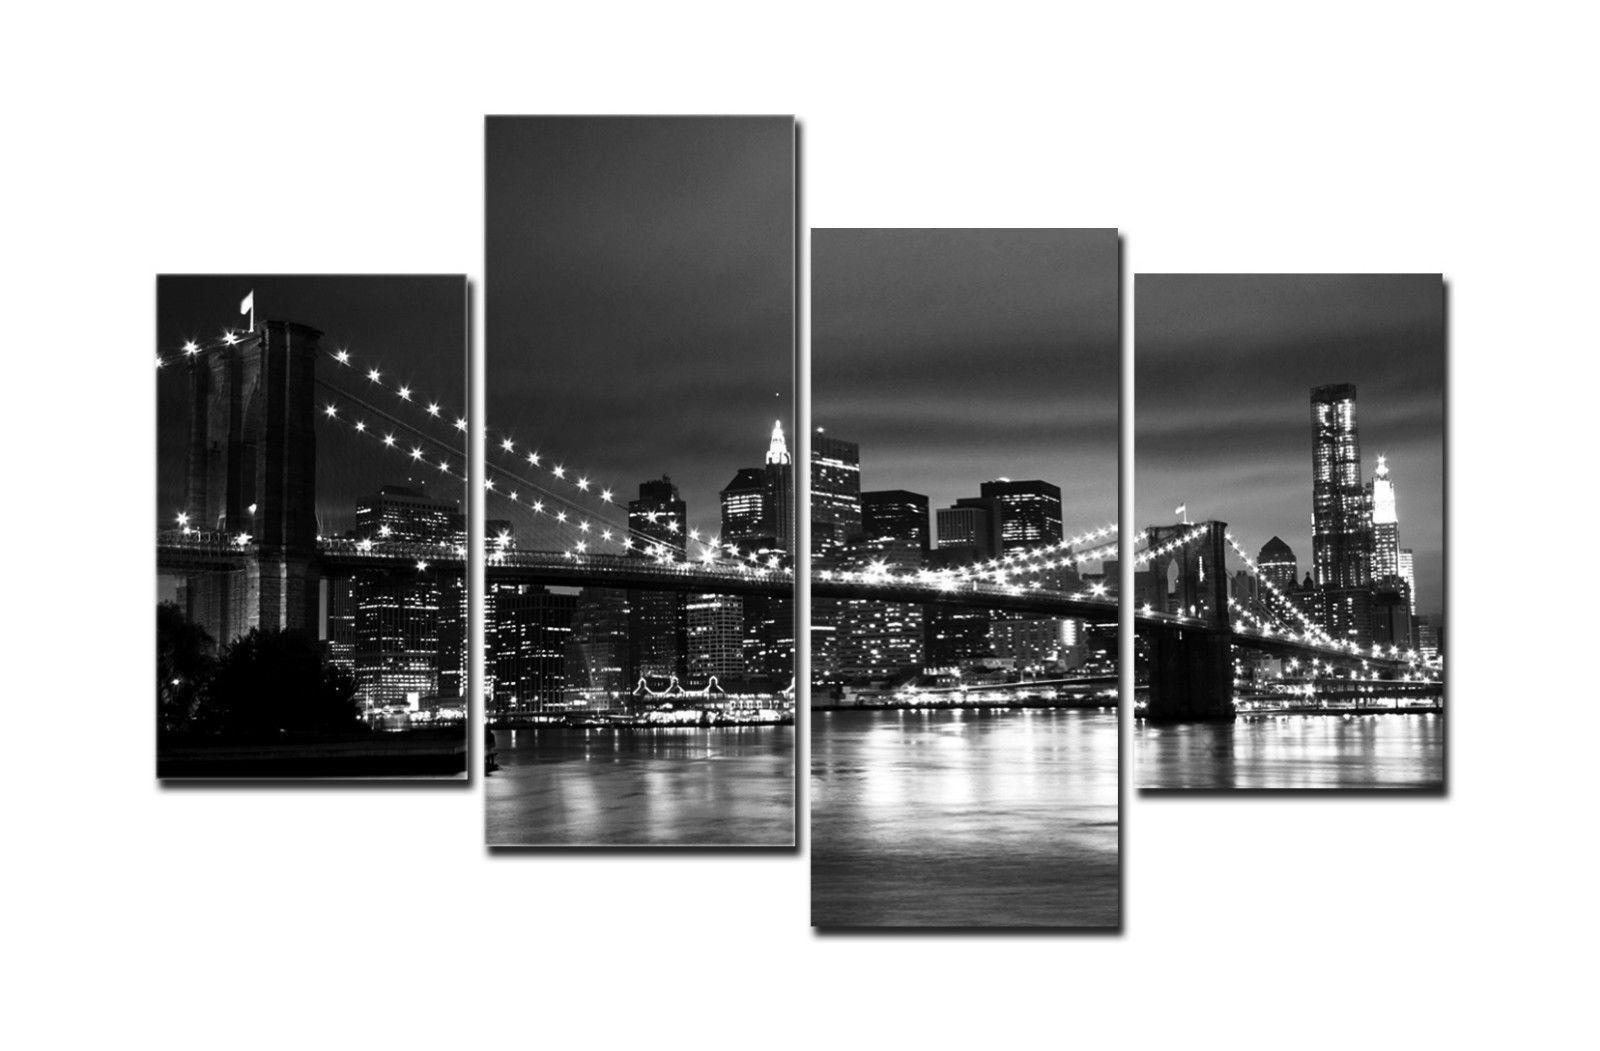 Hd Canvas Print Home Decor Wall Art Painting New York Bridge – No Regarding Recent Canvas Wall Art Of New York City (View 11 of 15)